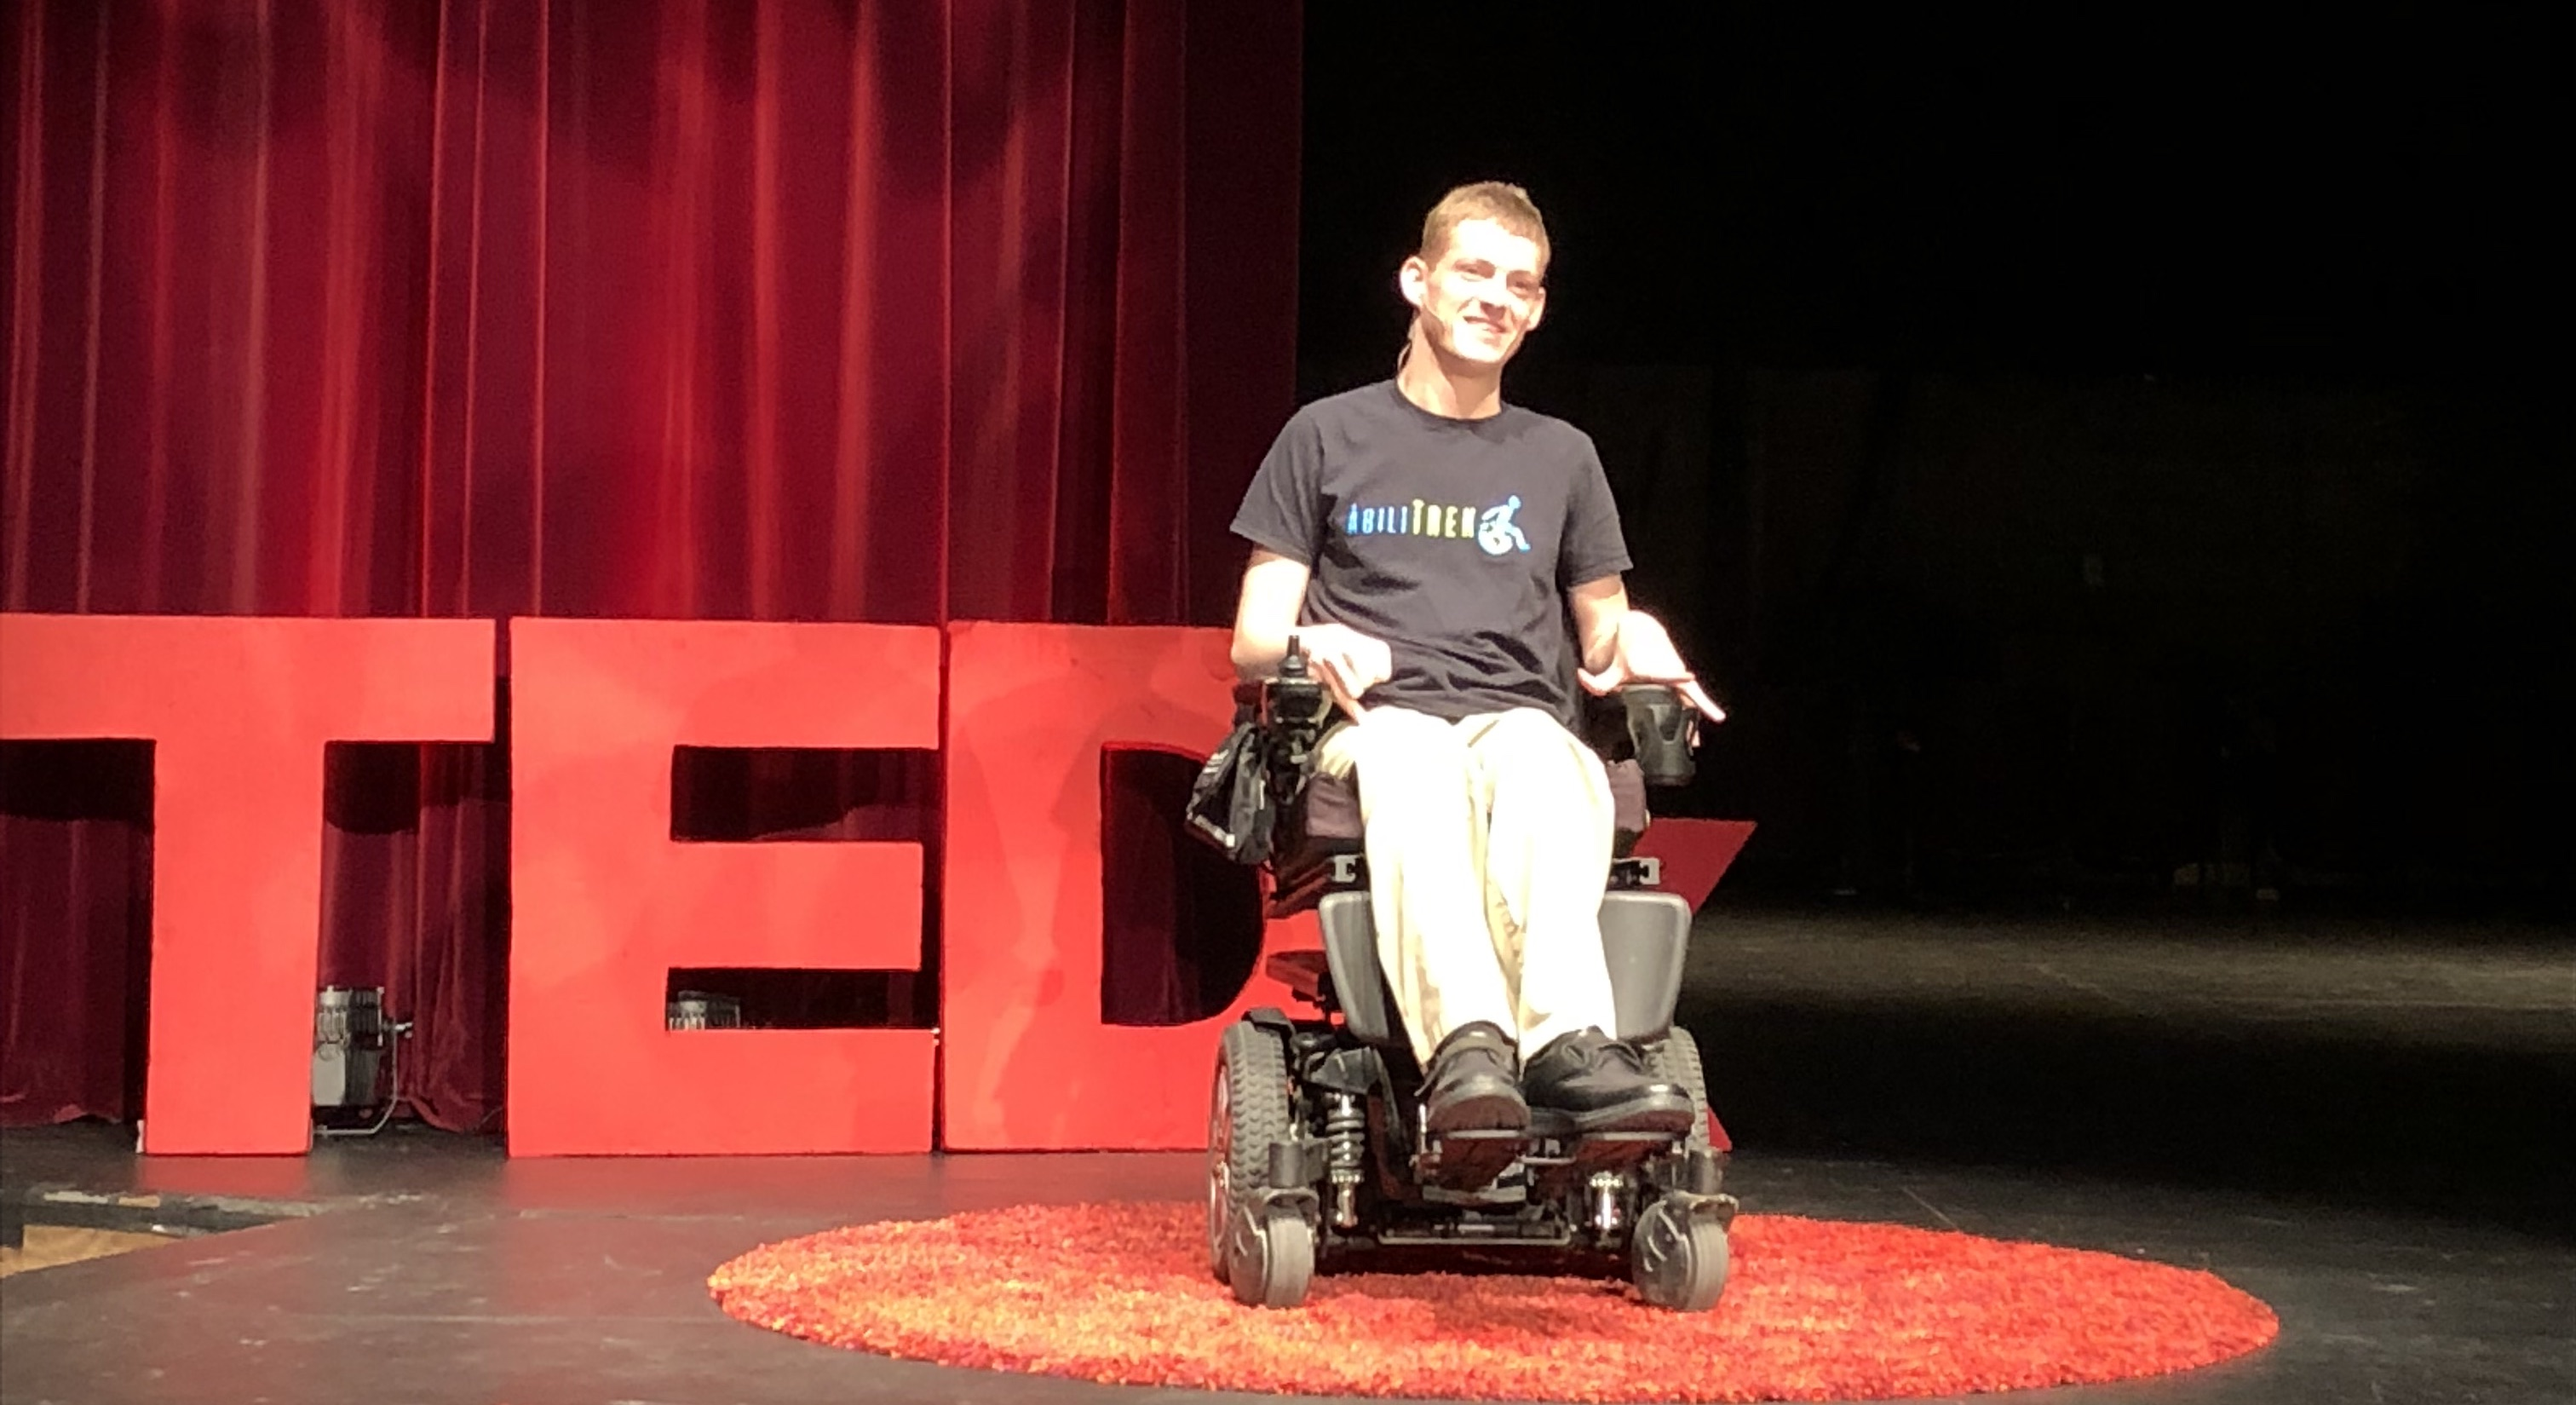 Daman Wandke speaks onstage at the WWU TEDx conference